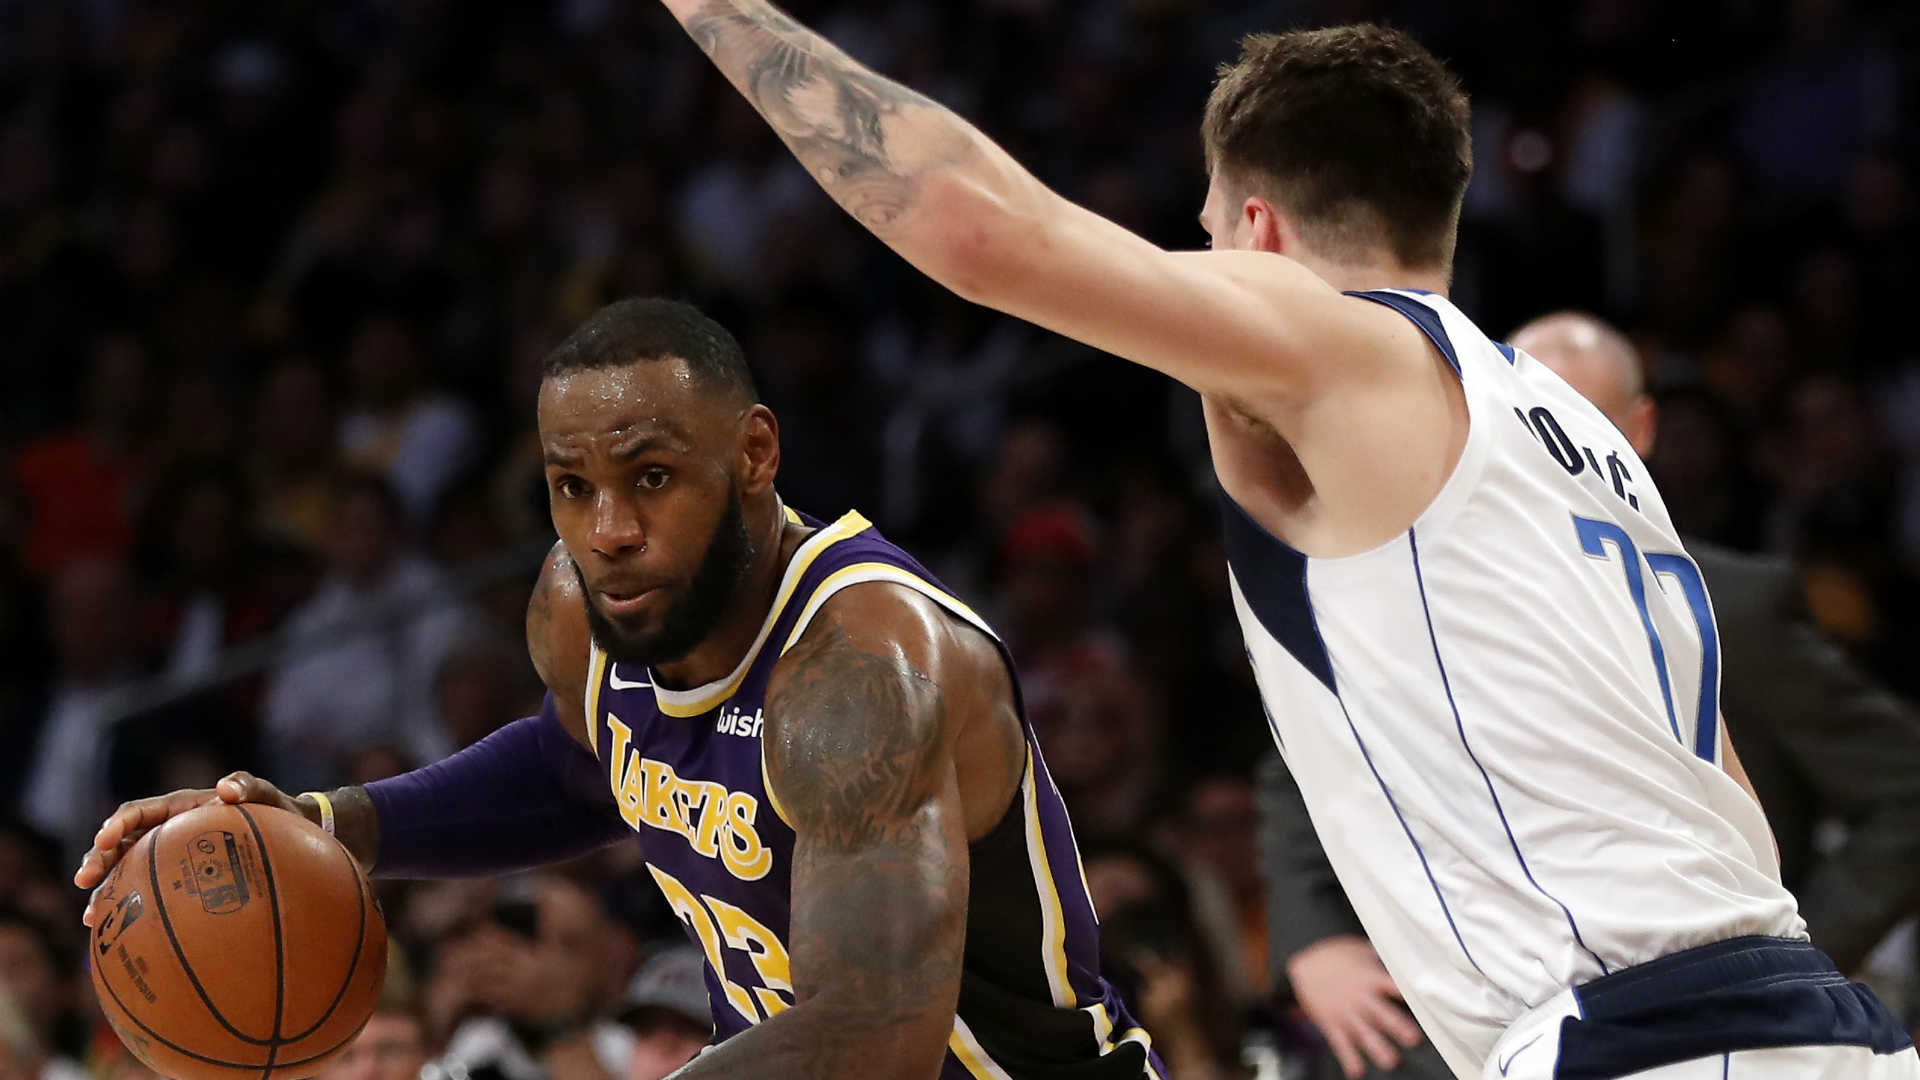 LeBron James backs Luke Walton, coaching staff after Los Angeles Lakers win